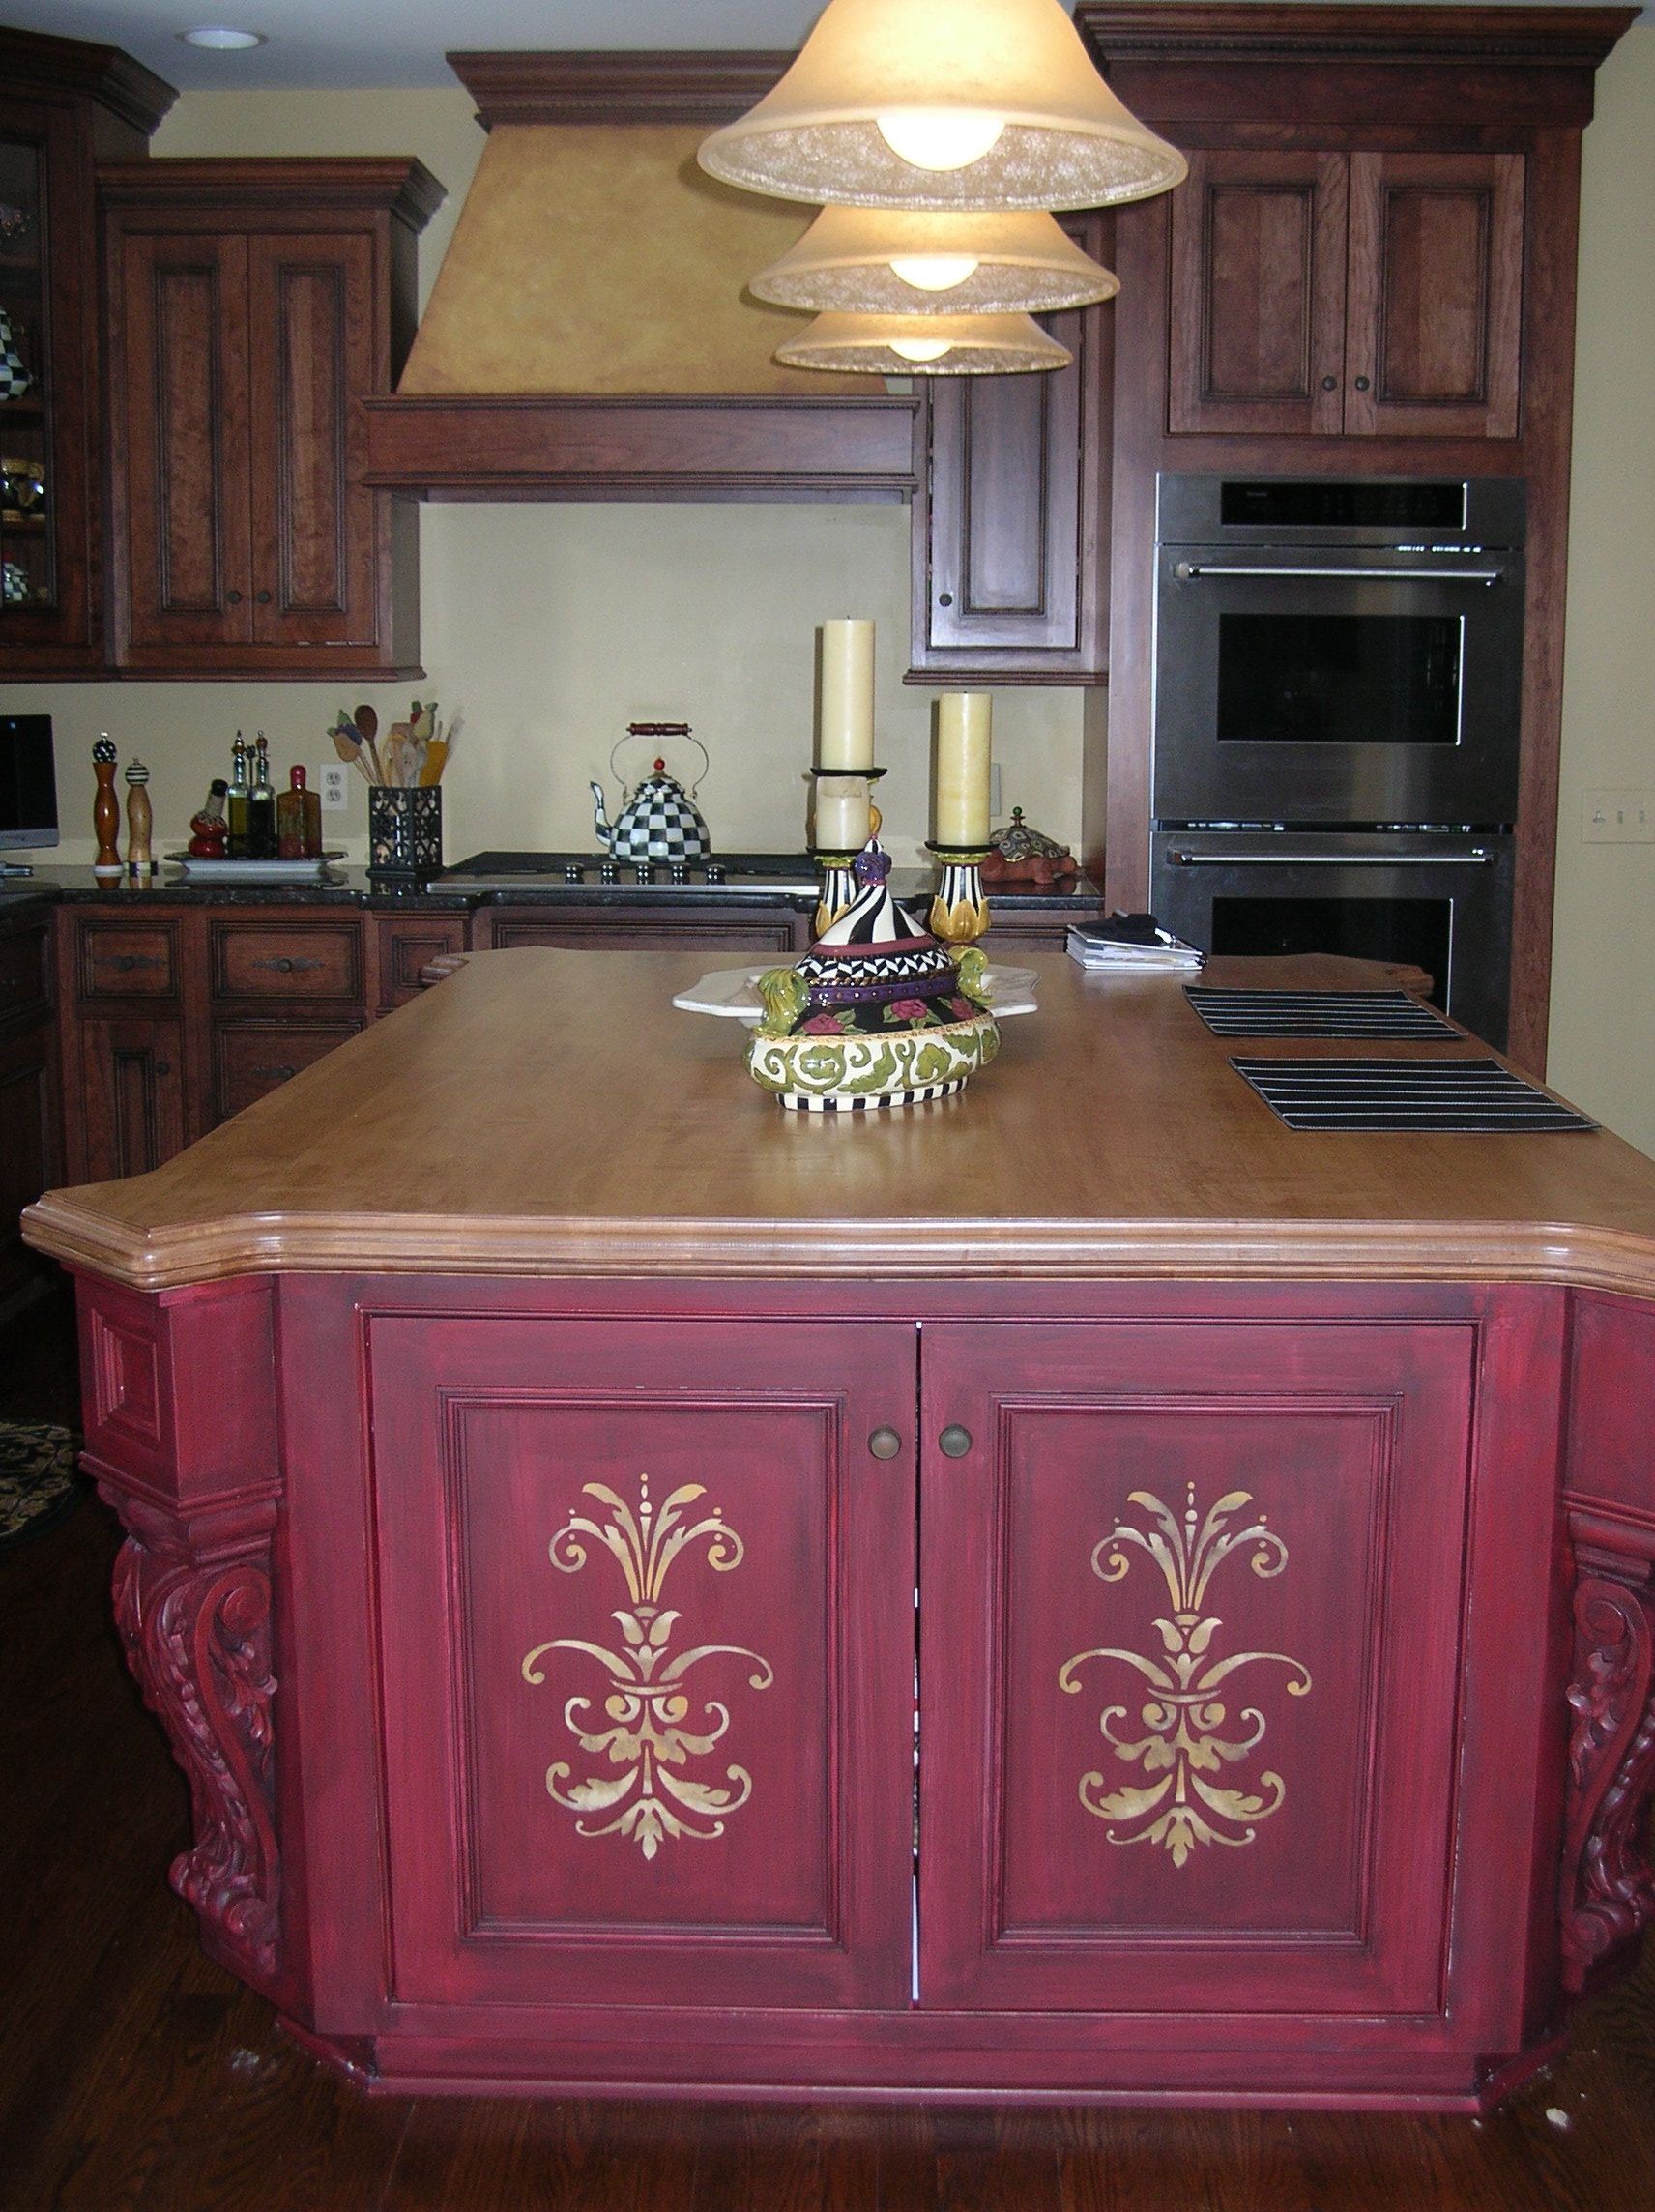 Masters Kitchen Base Cabinets The Custom Kitchen Island In This Large Kitchen Needed To